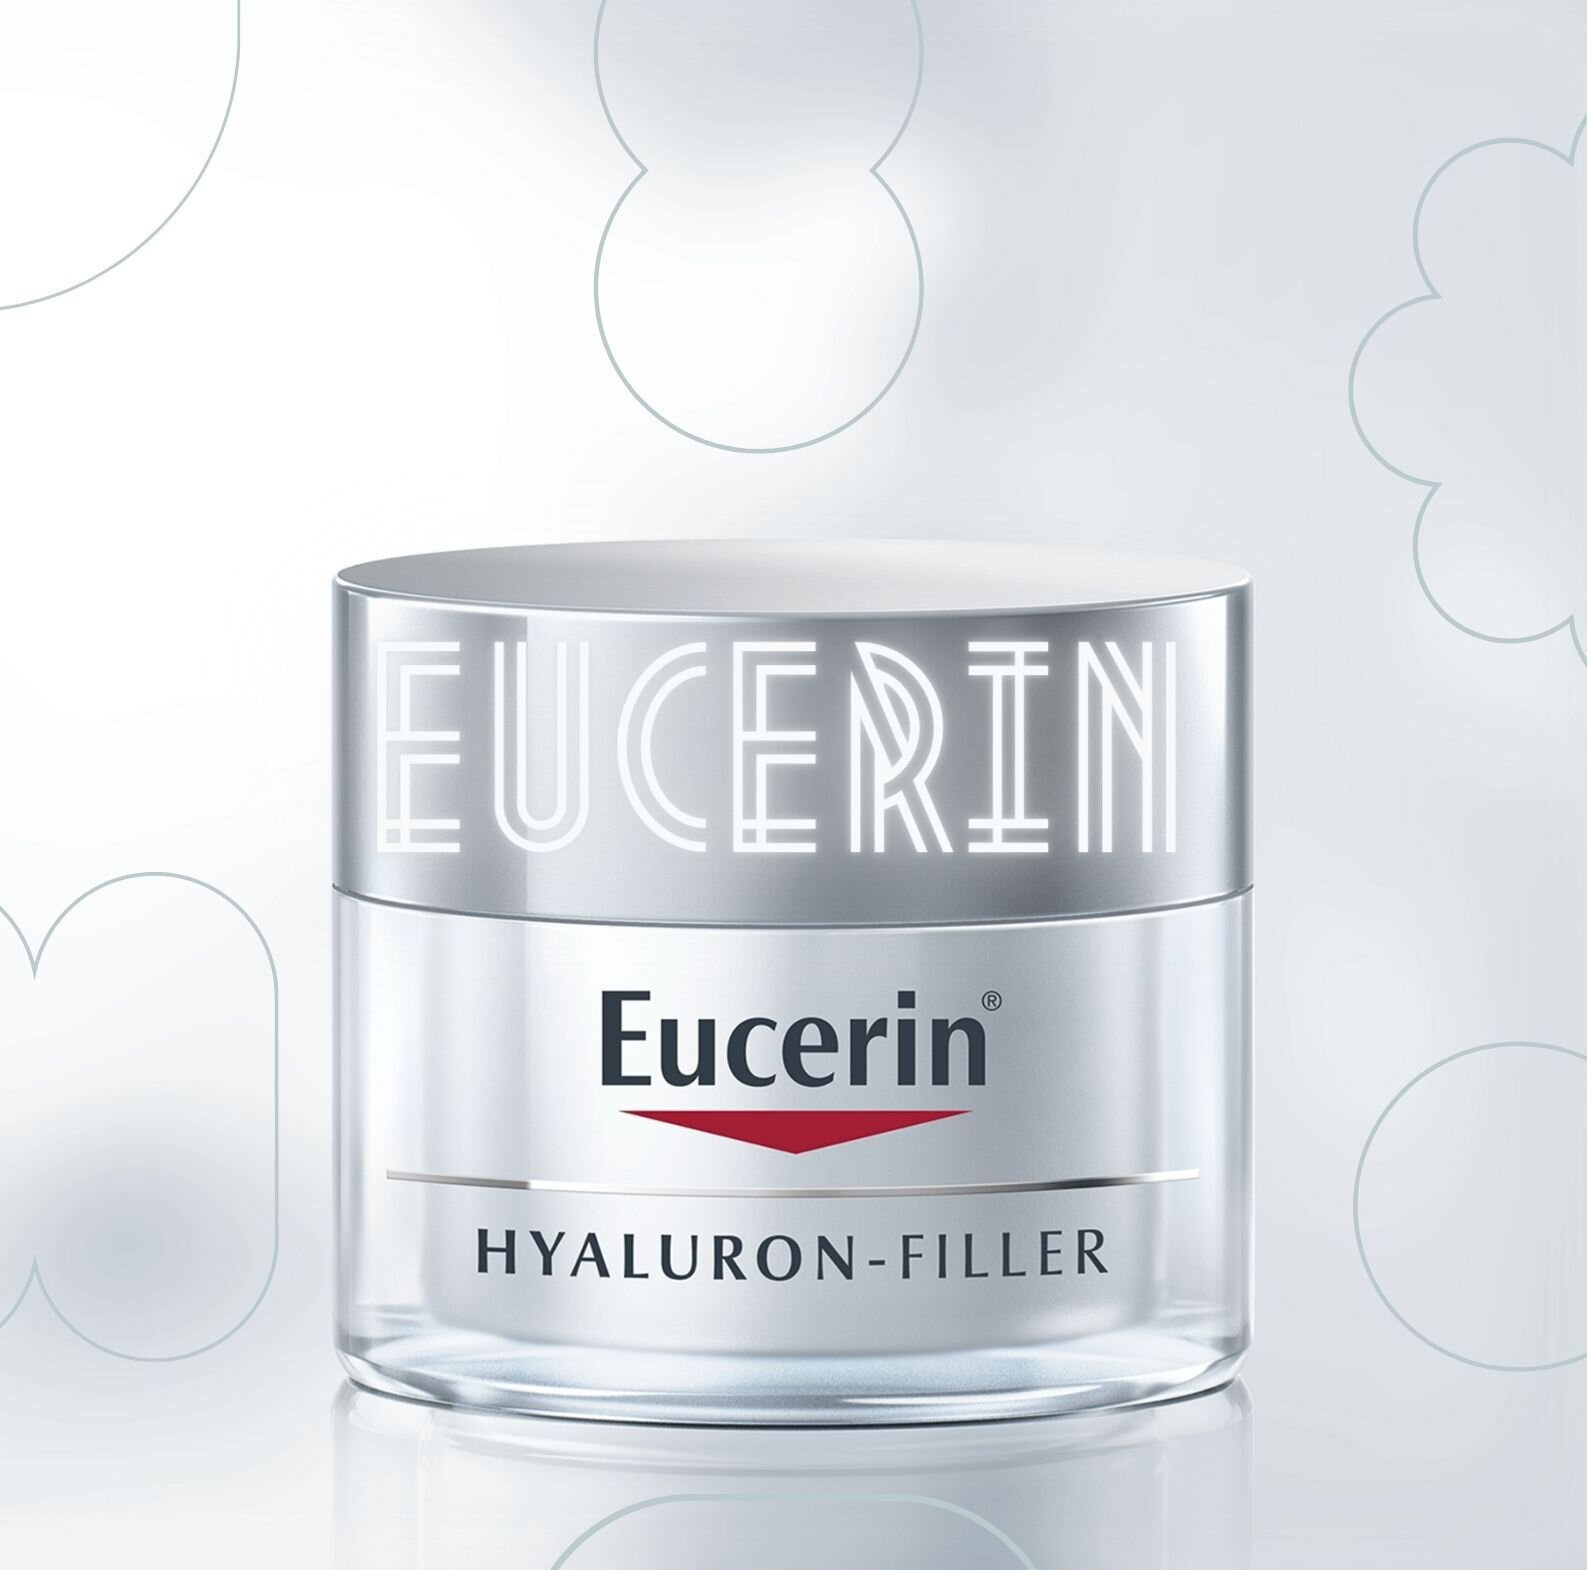 [REVIEW] Eucerin Hyaluron-Filler Day Cream For Dry Skin (Before and After)